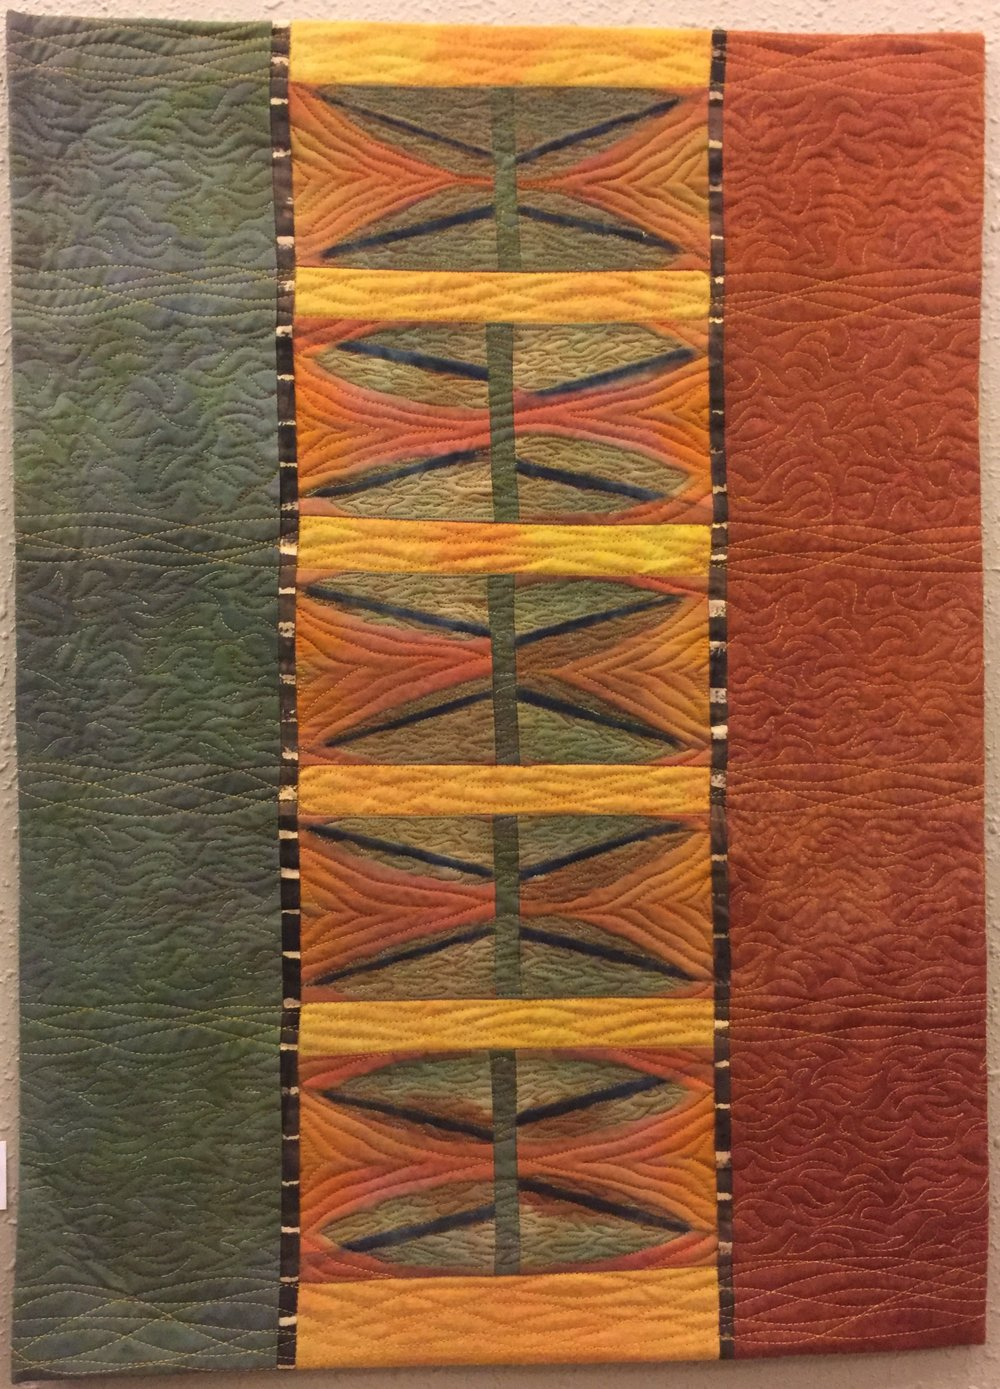 PATTERNS IN Fiber - by joan dyer